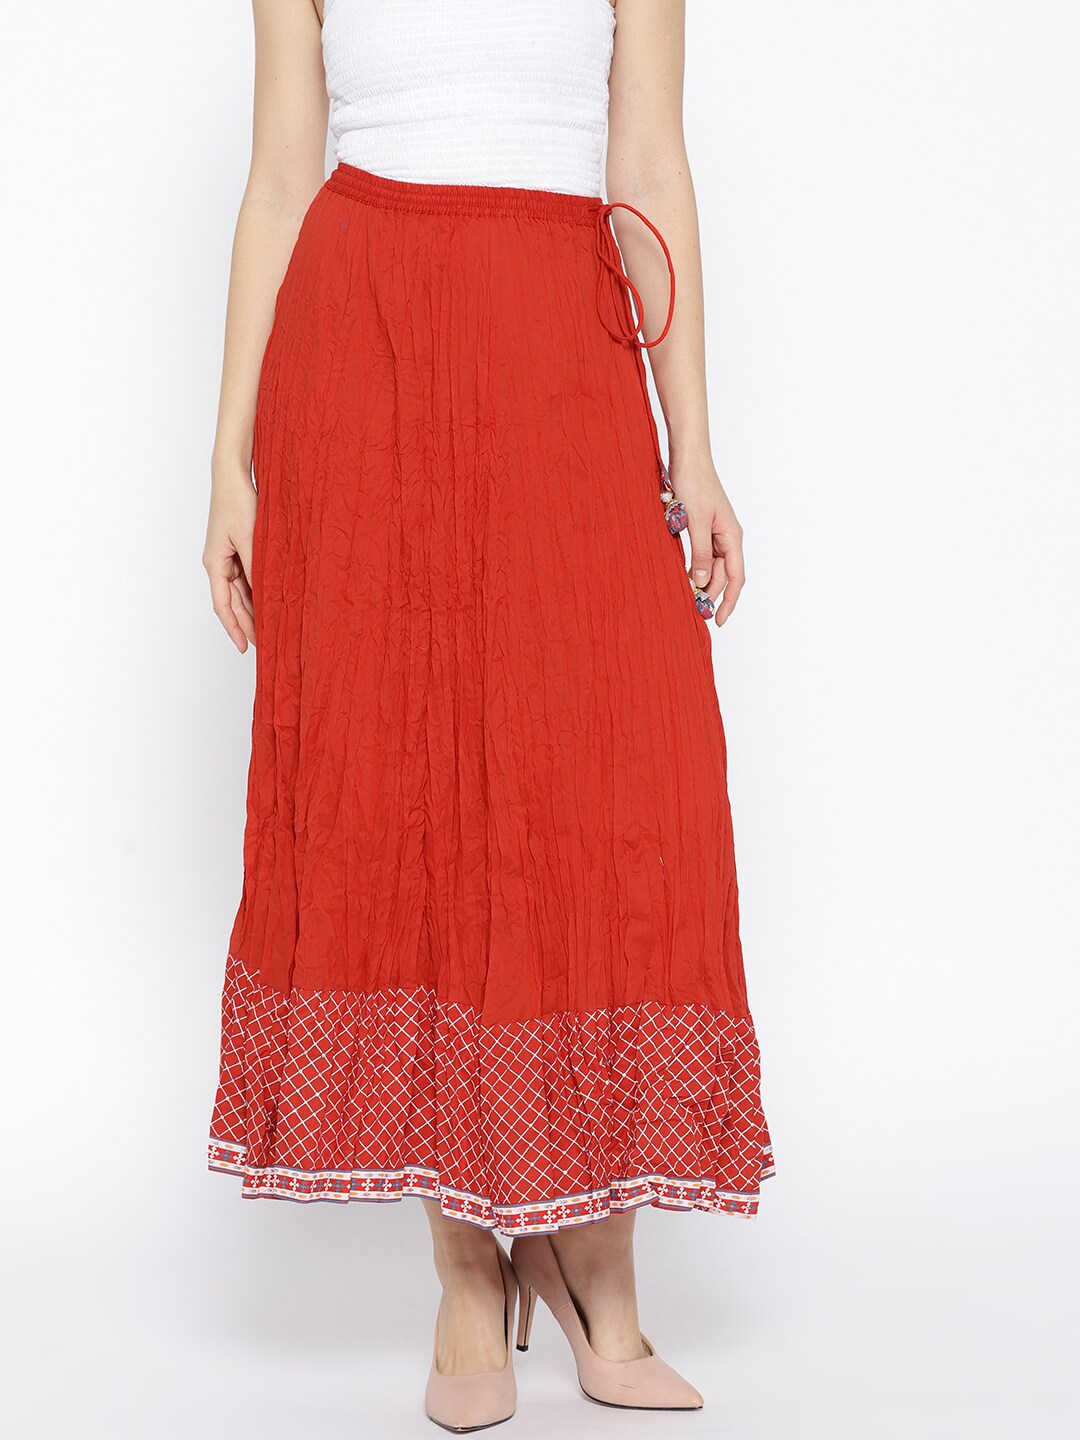 0fc5041f2d27 Biba Red And Gold With Skirt - Buy Biba Red And Gold With Skirt online in  India